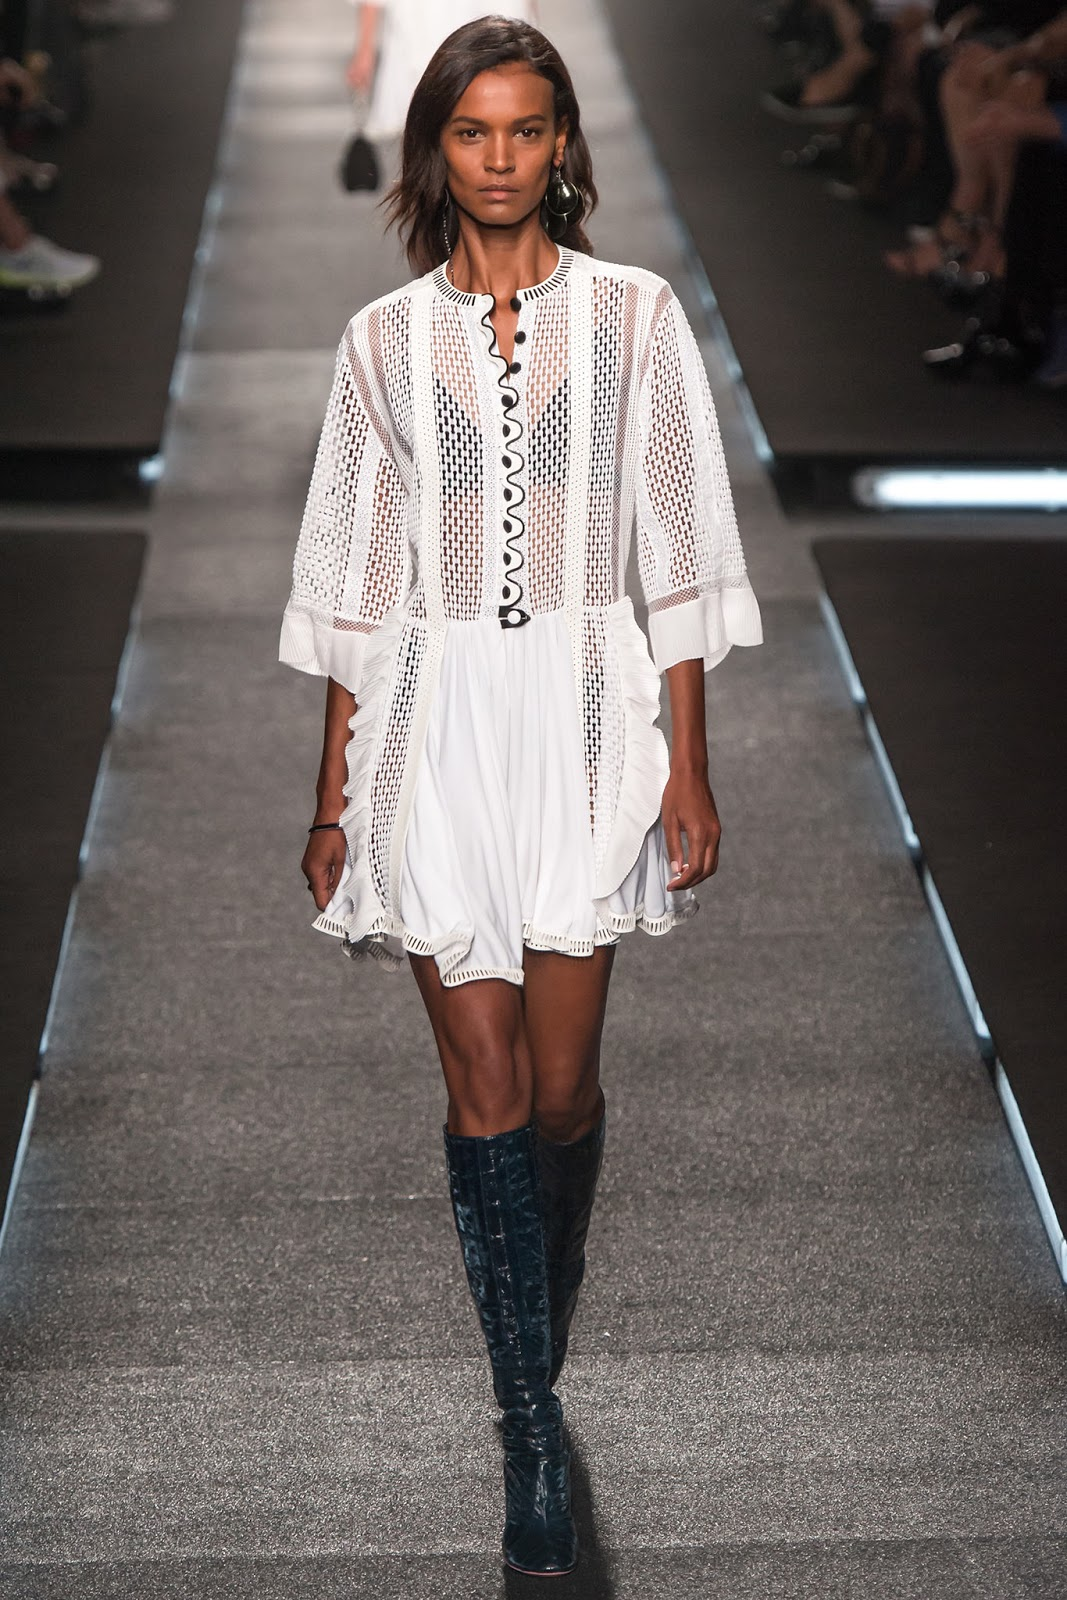 spring/summer 2015 trends / shirtdress / history of shirt dress / louis vuitton spring 2015 / via fashioned by love british fashion blog